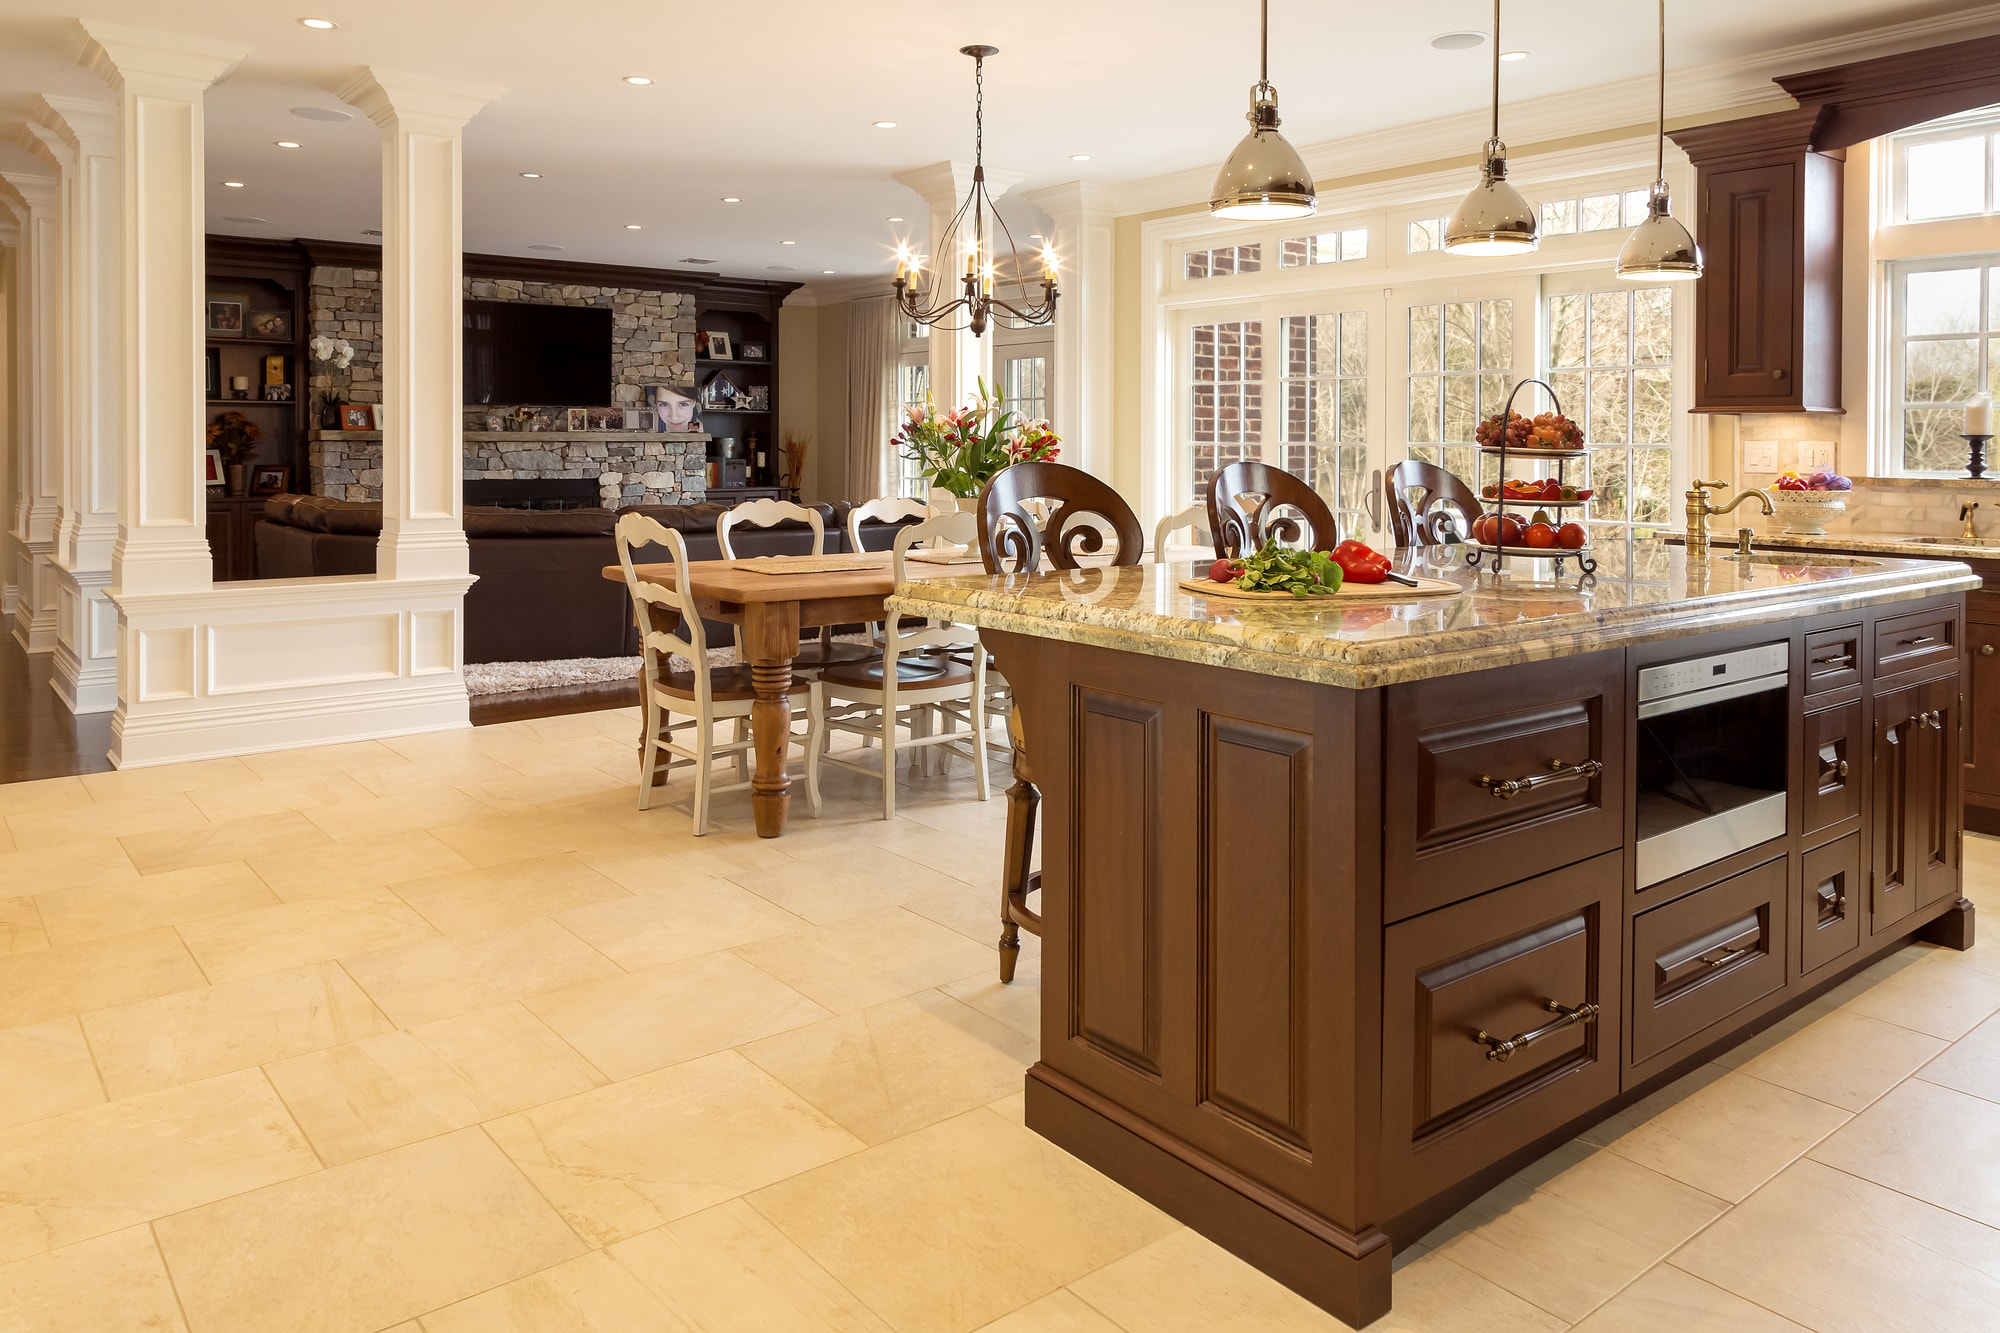 Traditional style kitchen open living room space